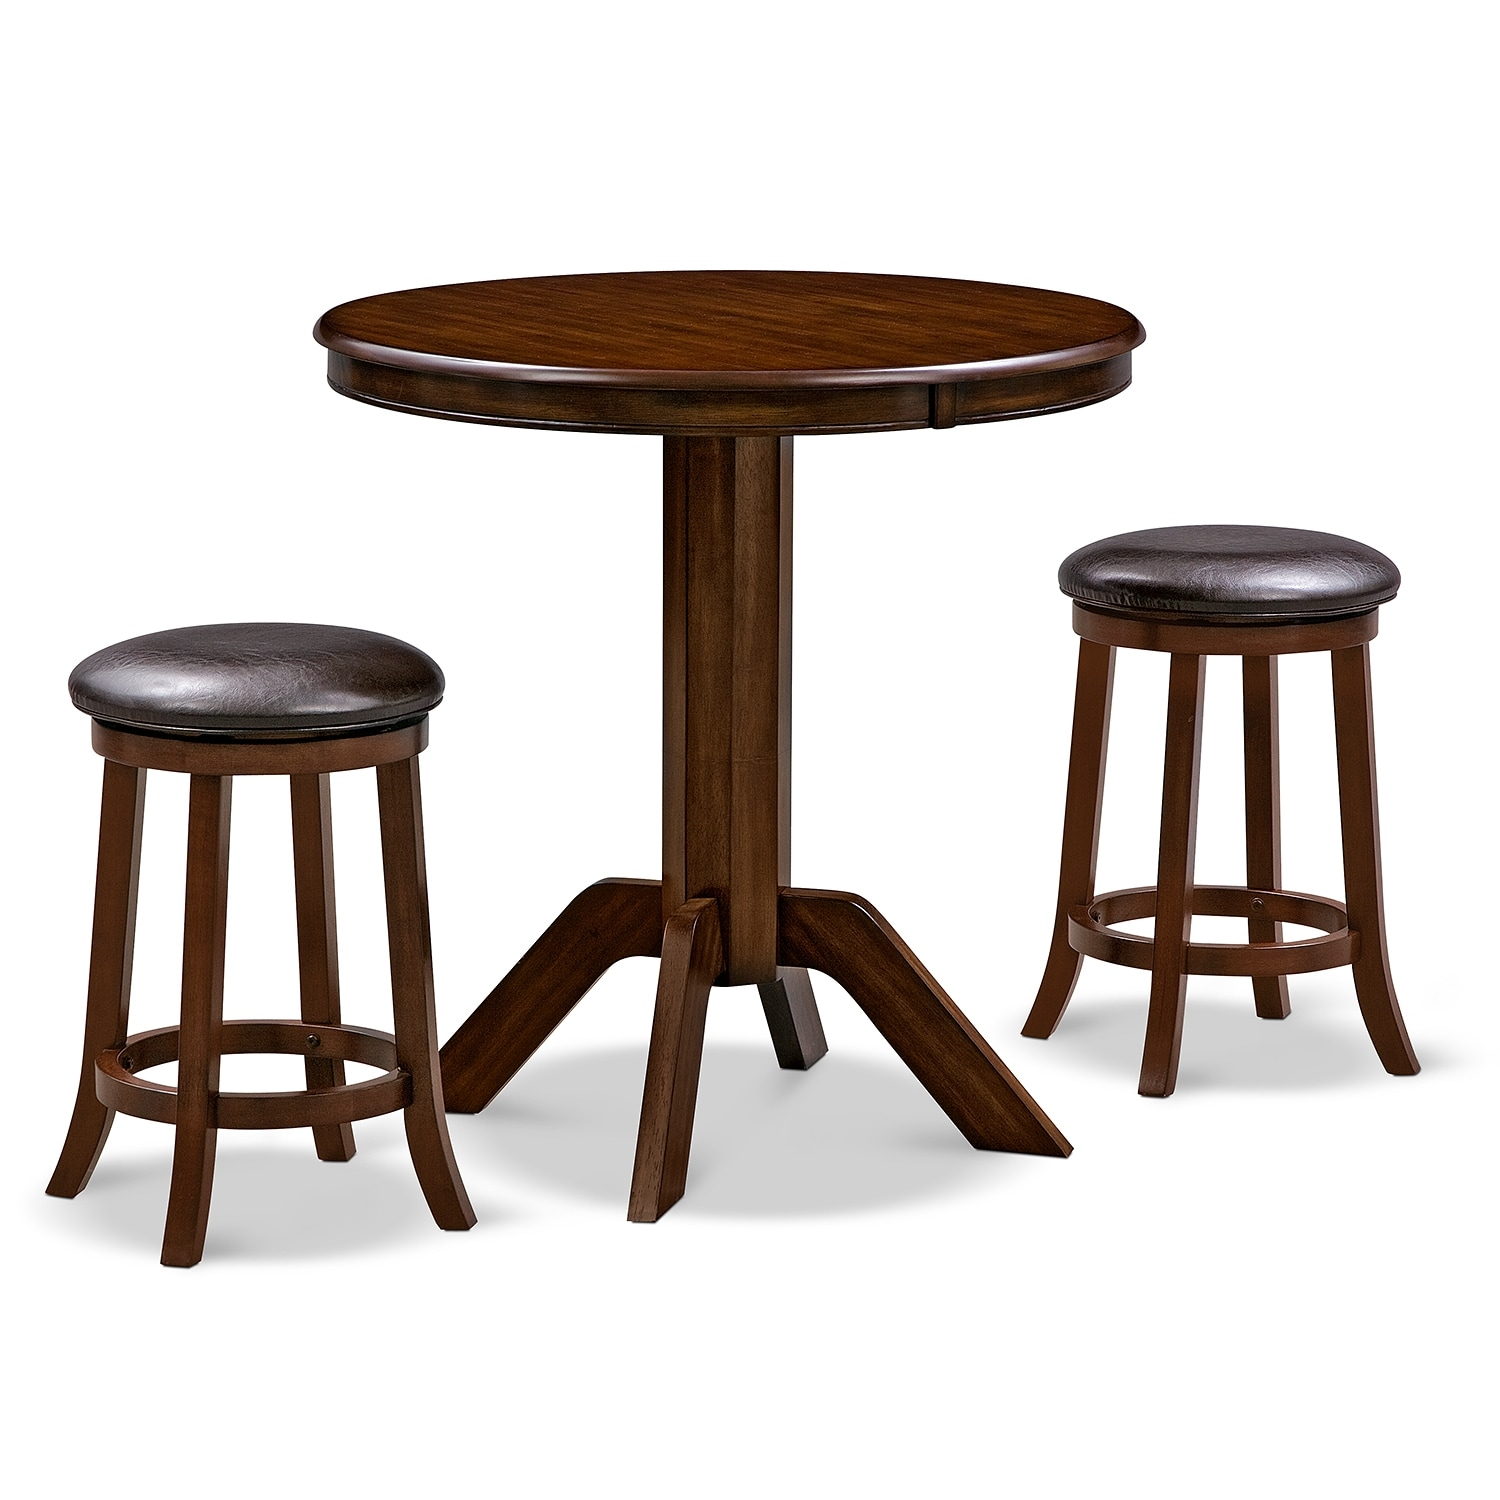 Dining Room Furniture - Concord Tinker 3 Pc. Counter-Height Dinette